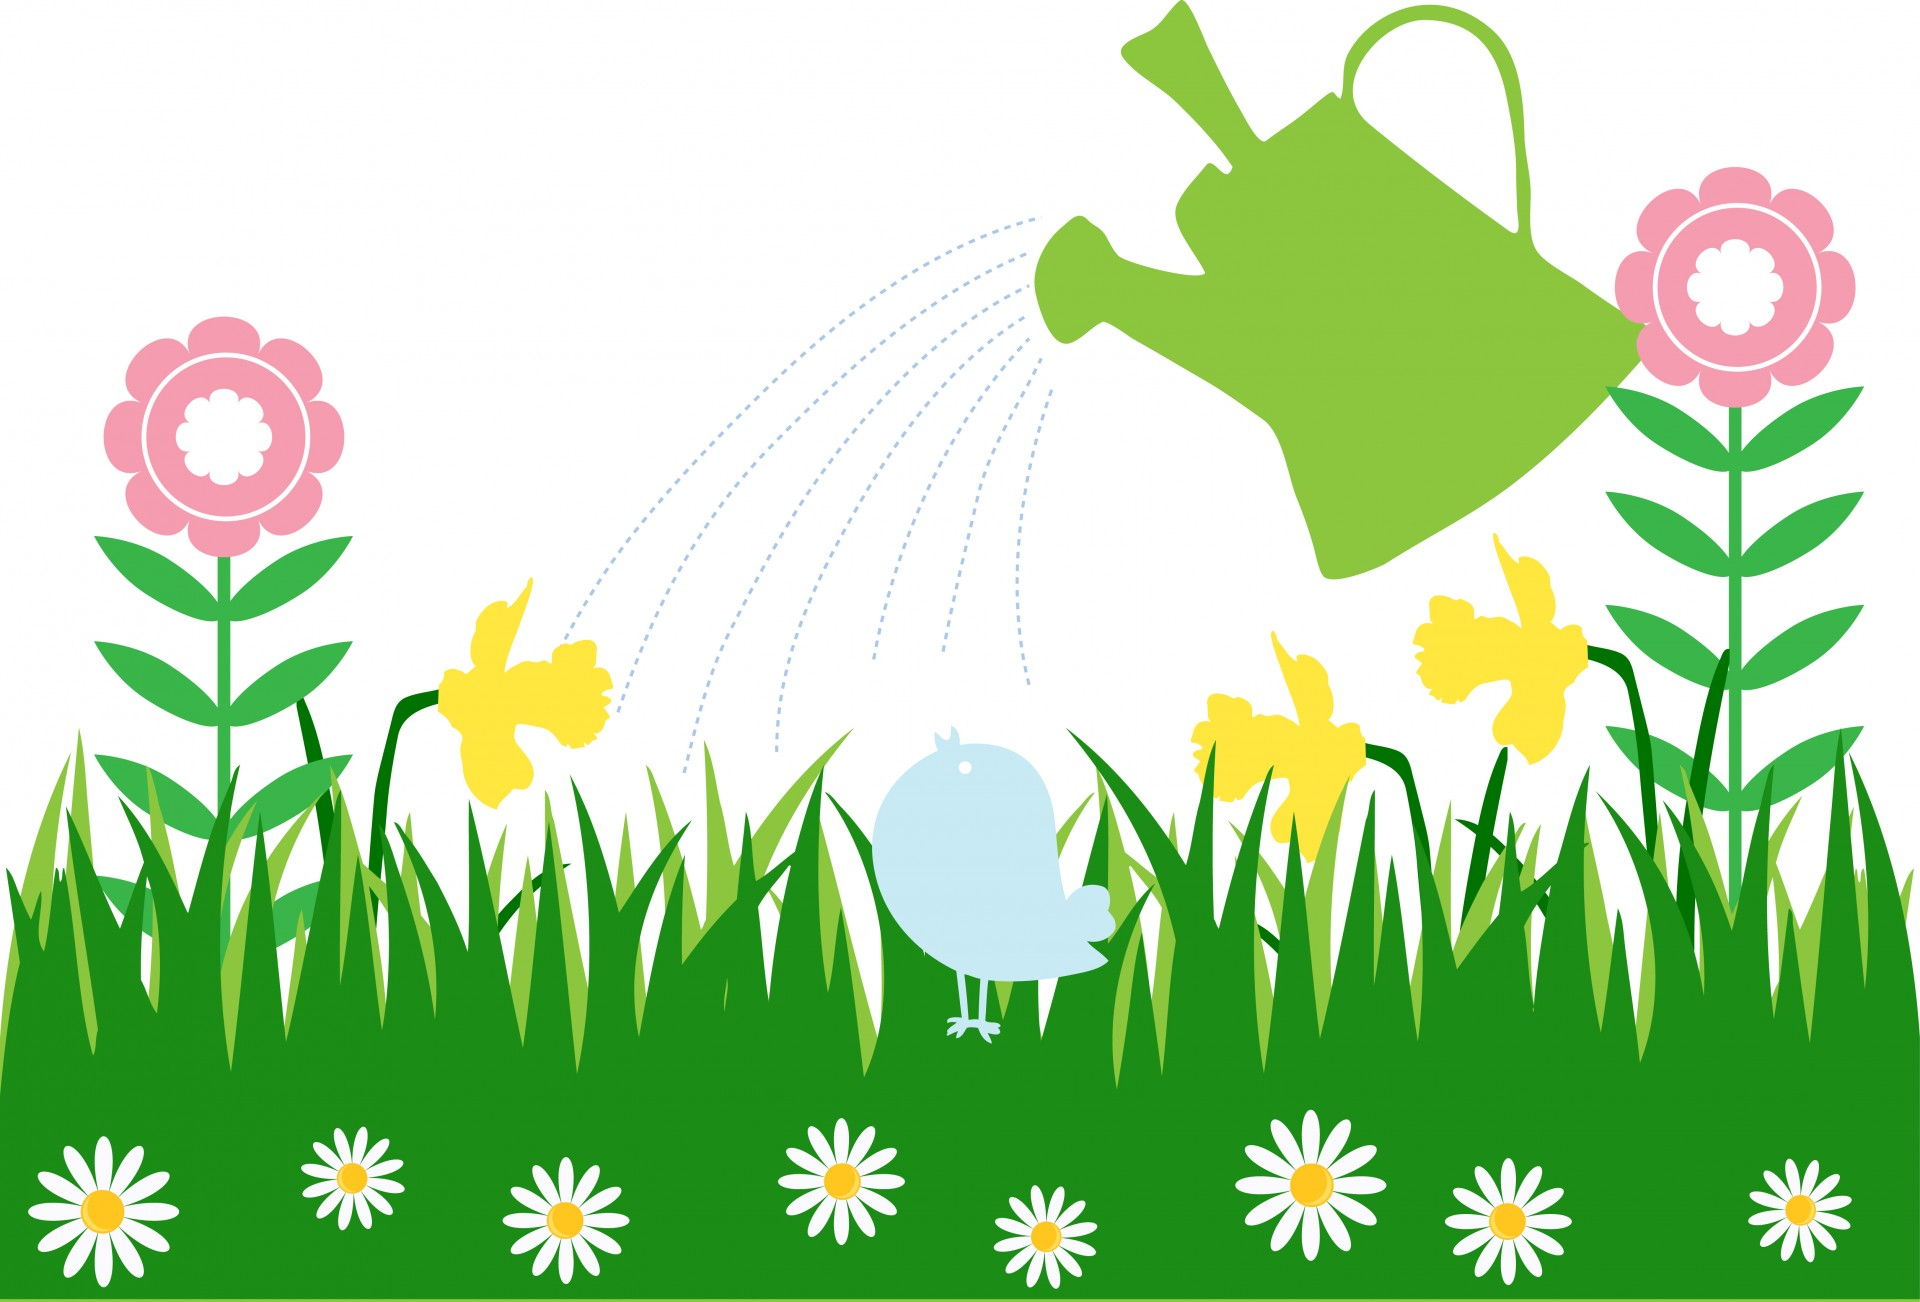 Watering can flowers clip art.